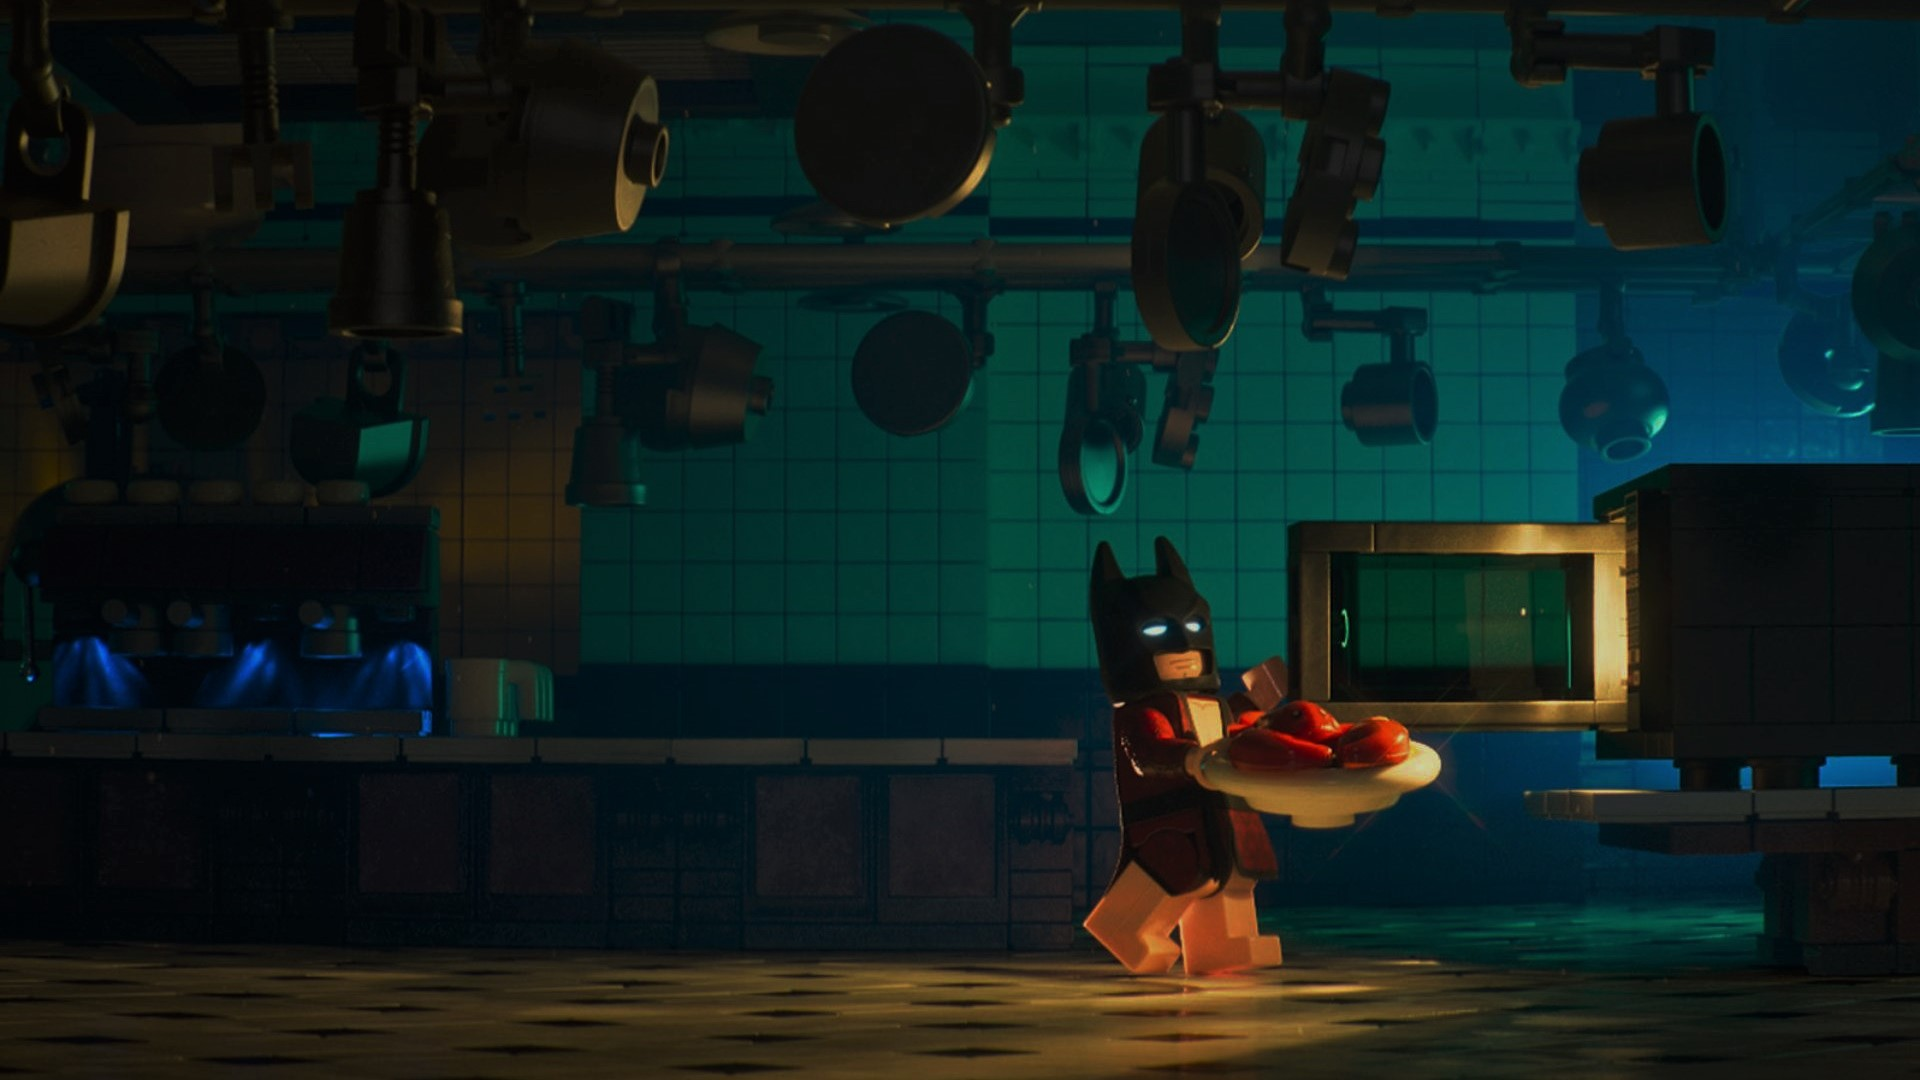 lego batman movie 2017 wallpapers high quality download free. Black Bedroom Furniture Sets. Home Design Ideas